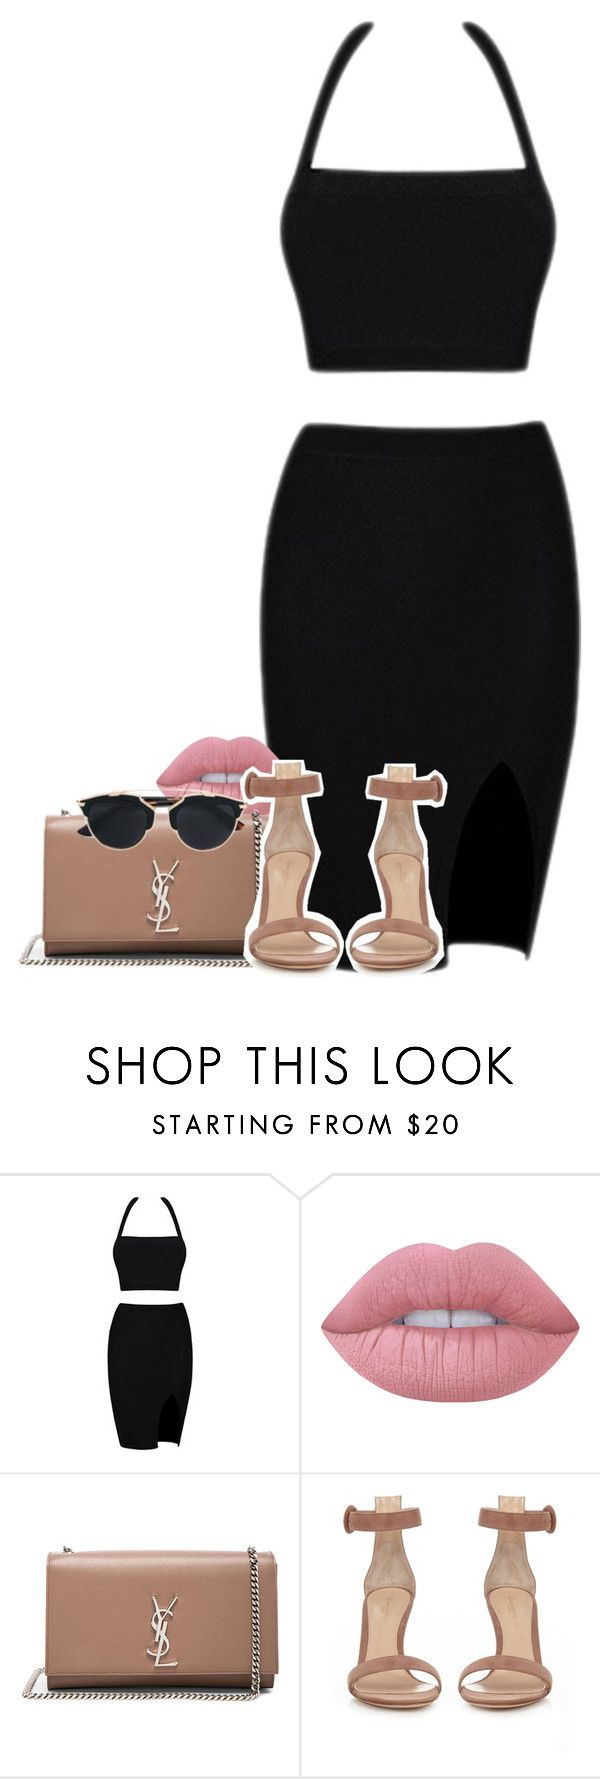 """""""yes?"""" by rebelde4life ❤ liked on Polyvore featuring Lime Crime, Yves Saint Laurent, Gianvito Rossi and Christian Dior"""